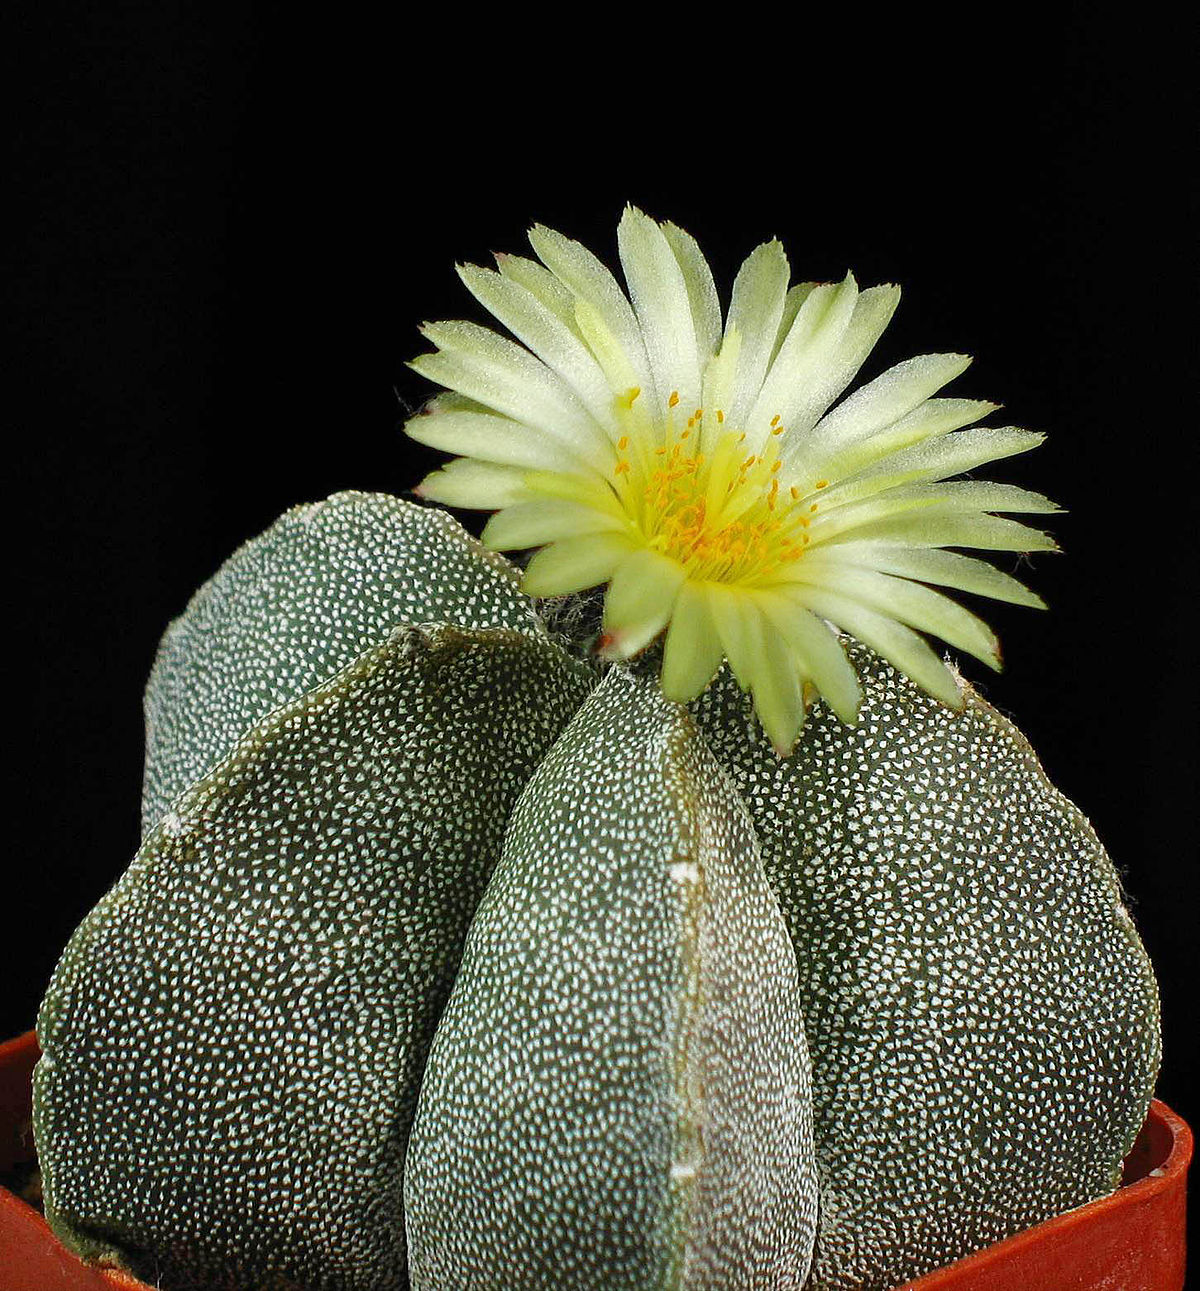 Astrophytum myriostigma wikipedia la enciclopedia libre for Significado de ornamental wikipedia